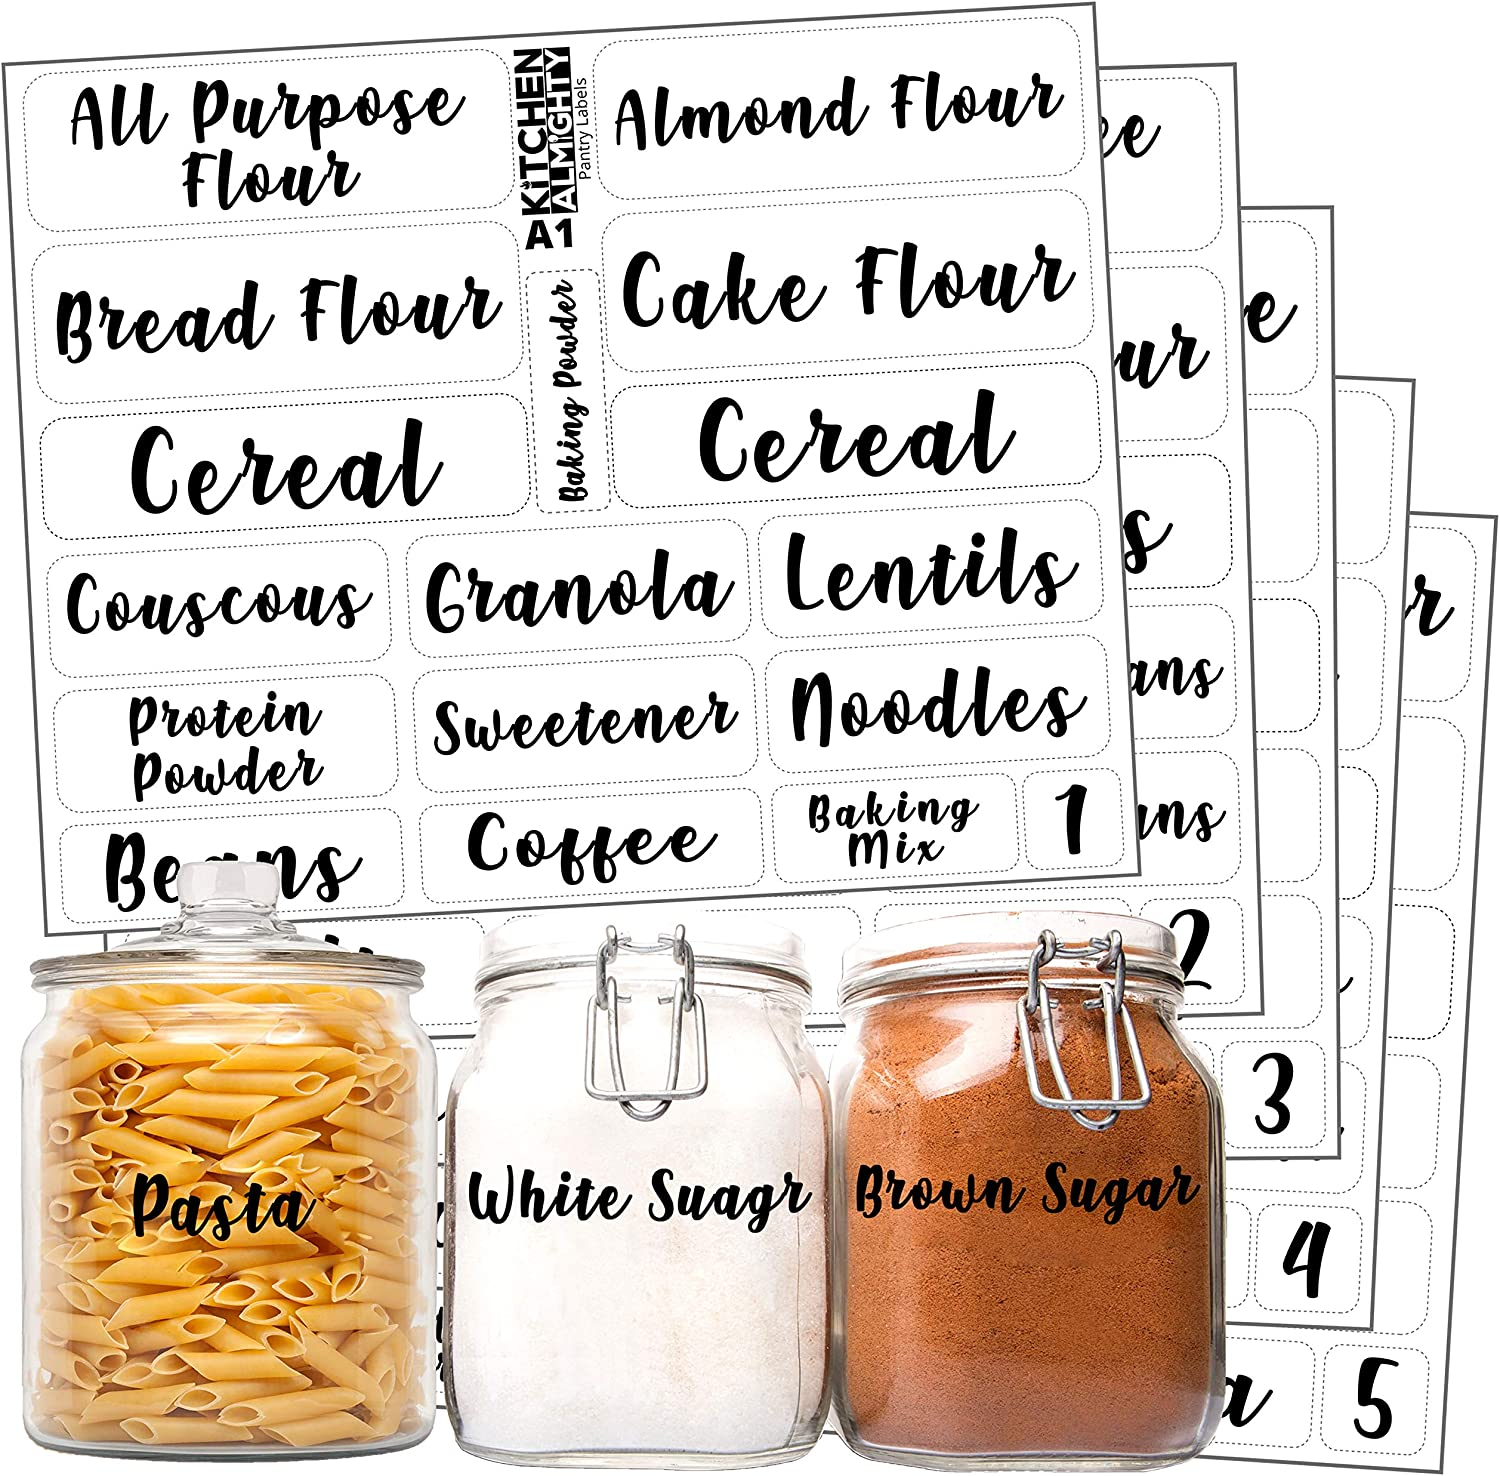 Kitchen Pantry Food Organization Clear Labels: 102 Attractive Gloss Artistic Preprinted Water Resistant Label Set to Organize Storage Containers, Jars & Canisters w/Extra Write-on Stickers